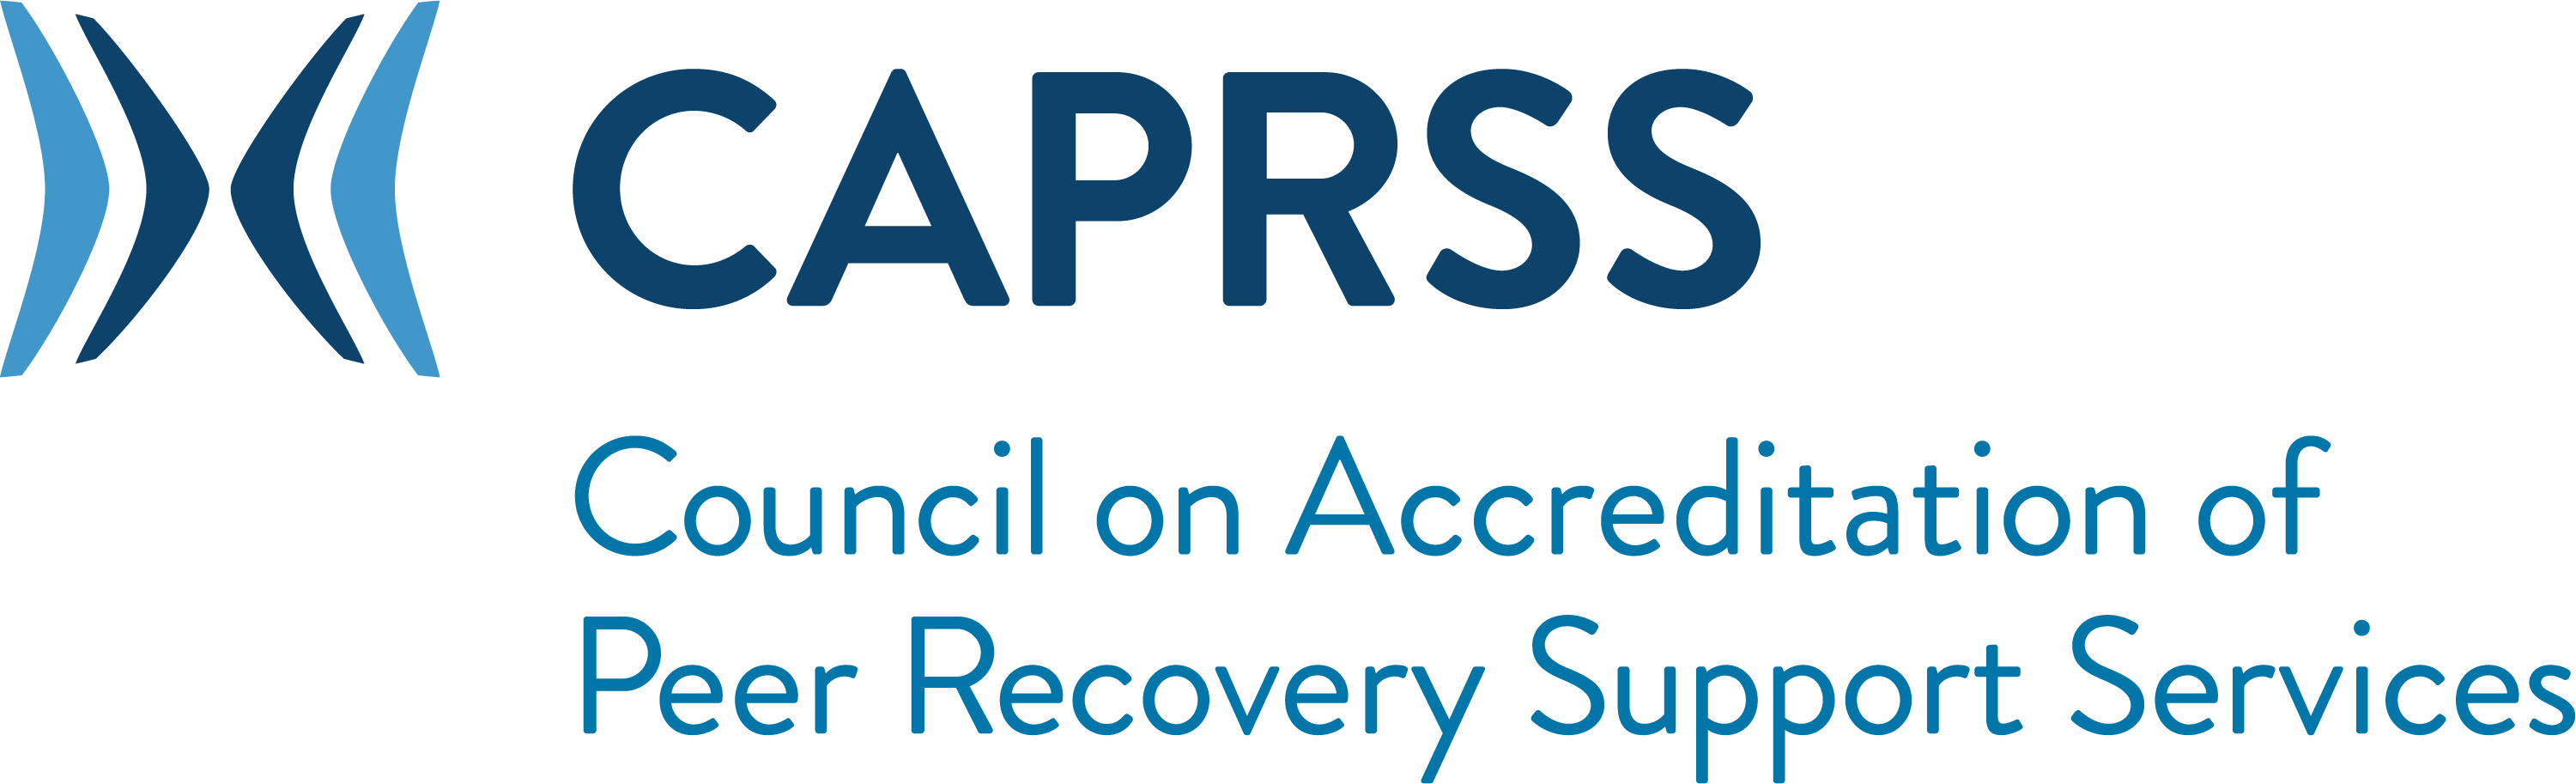 Council on Accreditation of Peer Recovery Support Services